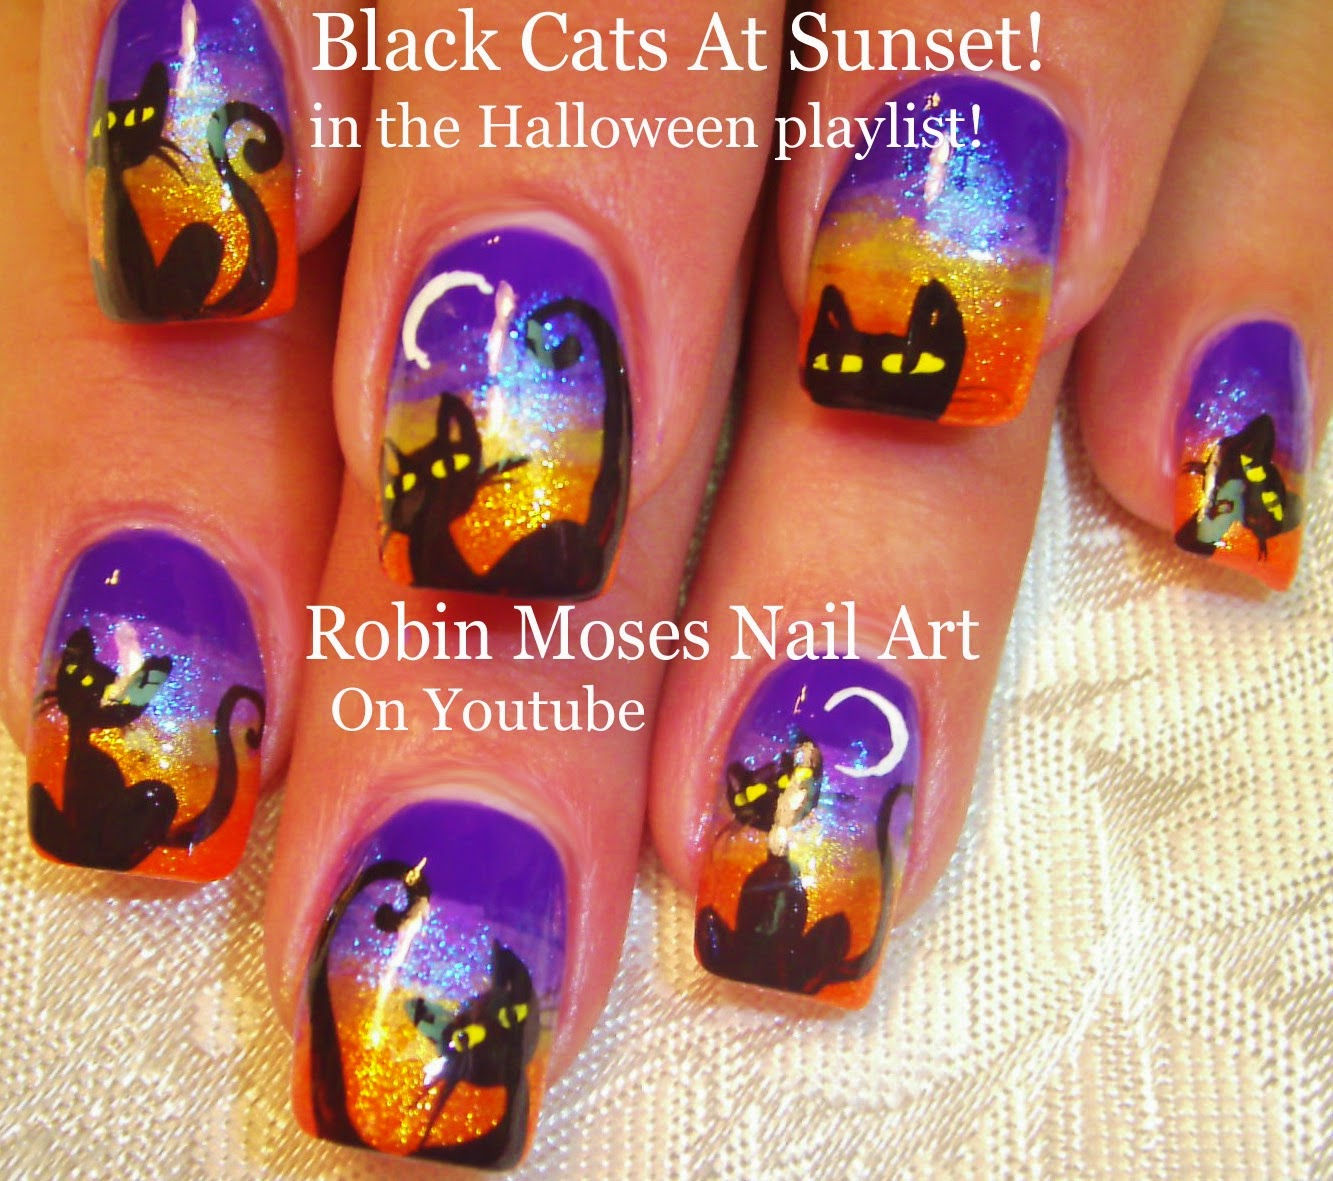 Nail art by robin moses halloween clip art cute halloween ideas nail art tutorials diy halloween nails easy halloween nail art designs for beginners solutioingenieria Image collections